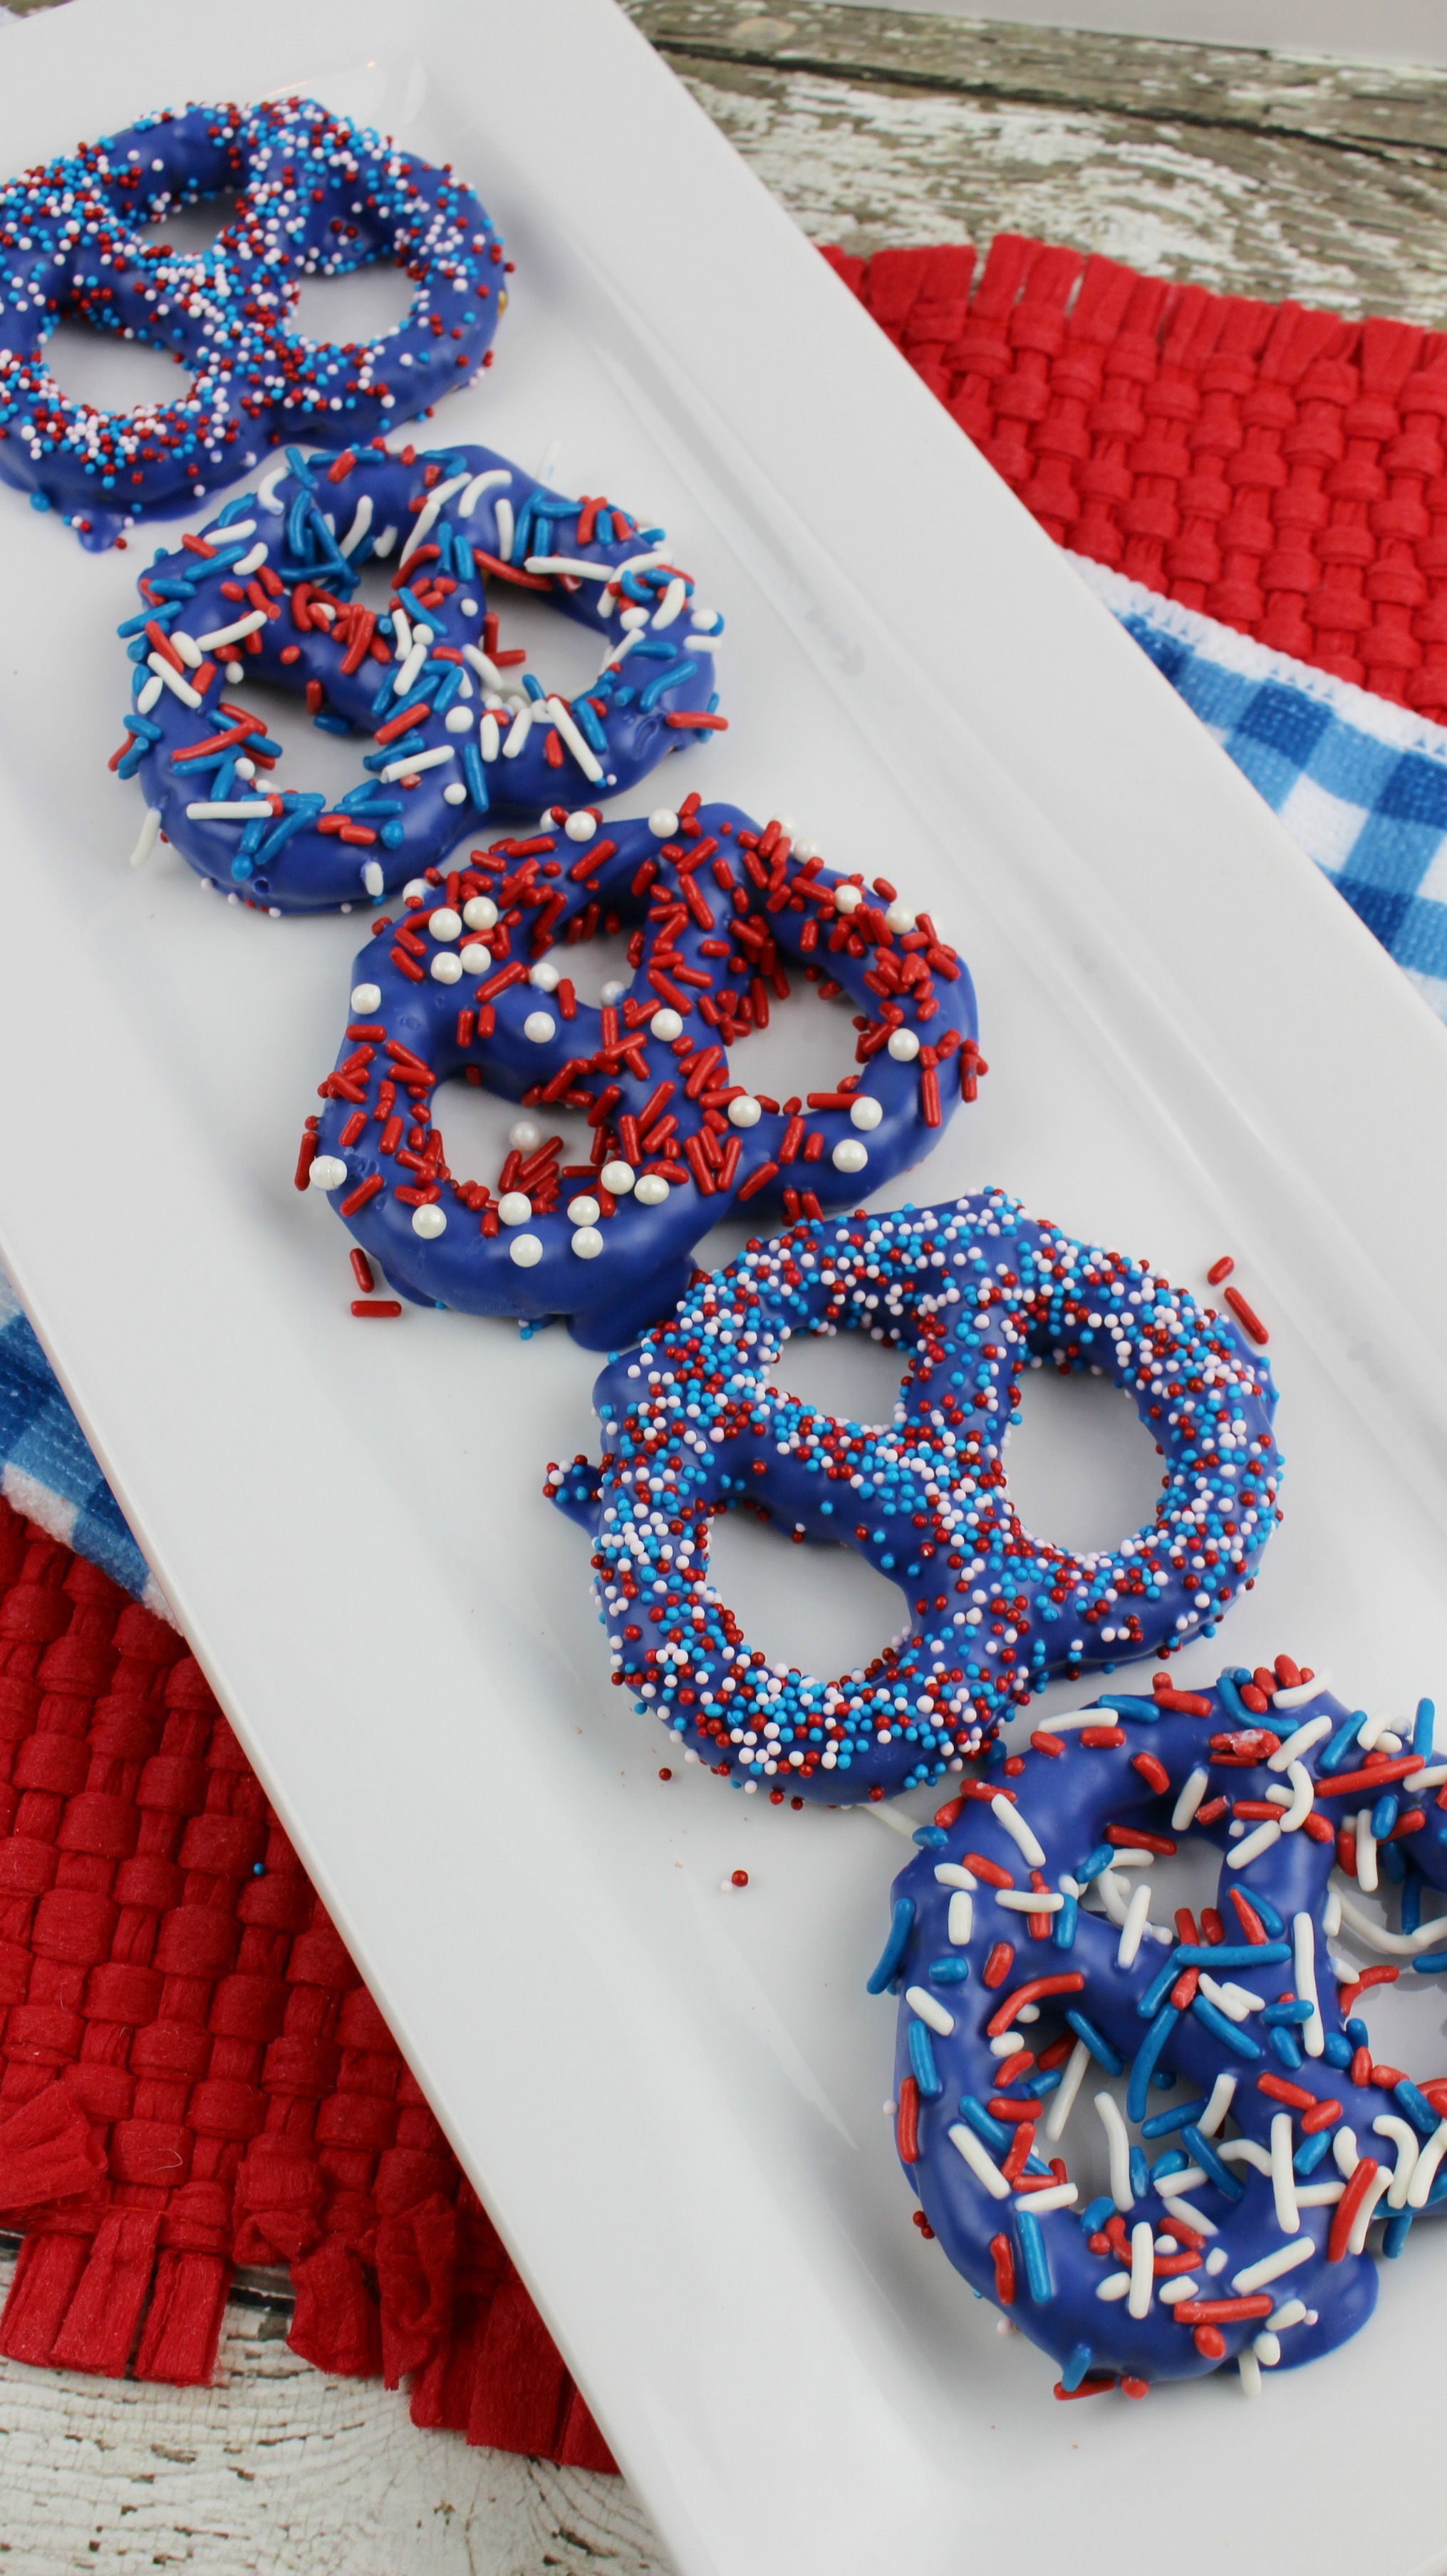 Patriotic preztels are a great addition to any picnic. It is a simple chocolate covered pretzel dessert that the kids will love helping to make.